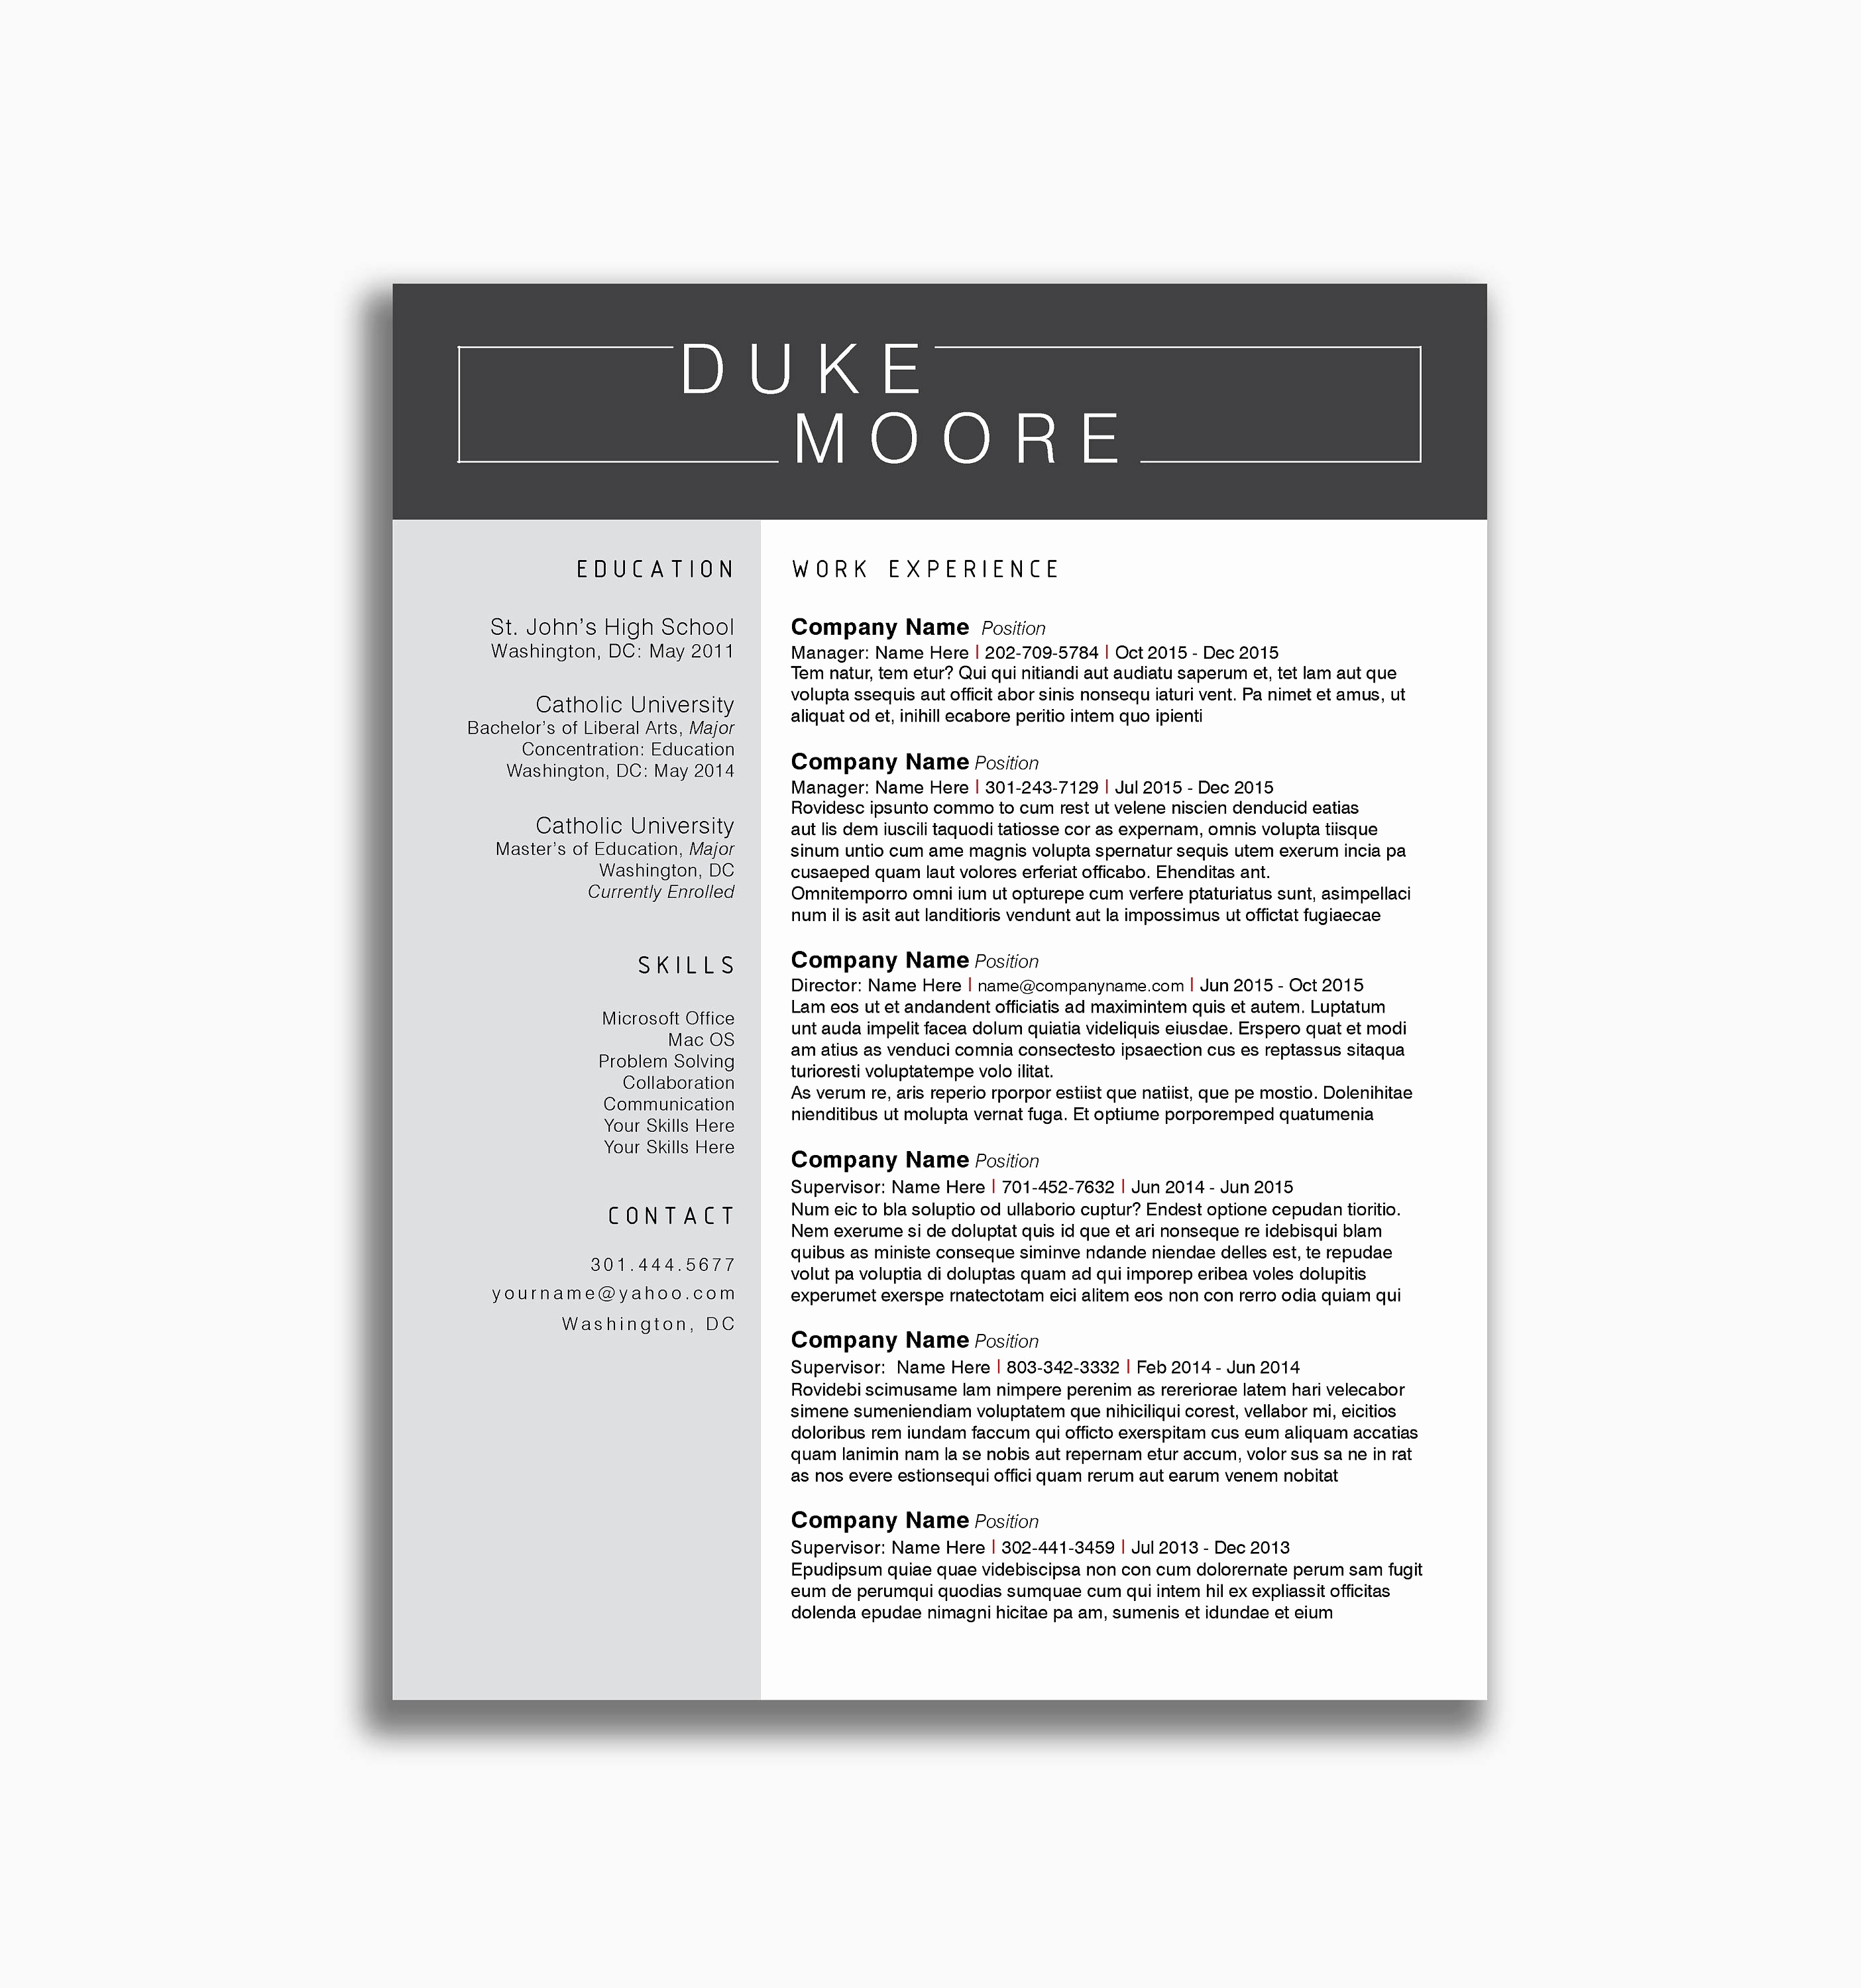 Cover Letter Template Doc - Cover Letter Template Doc